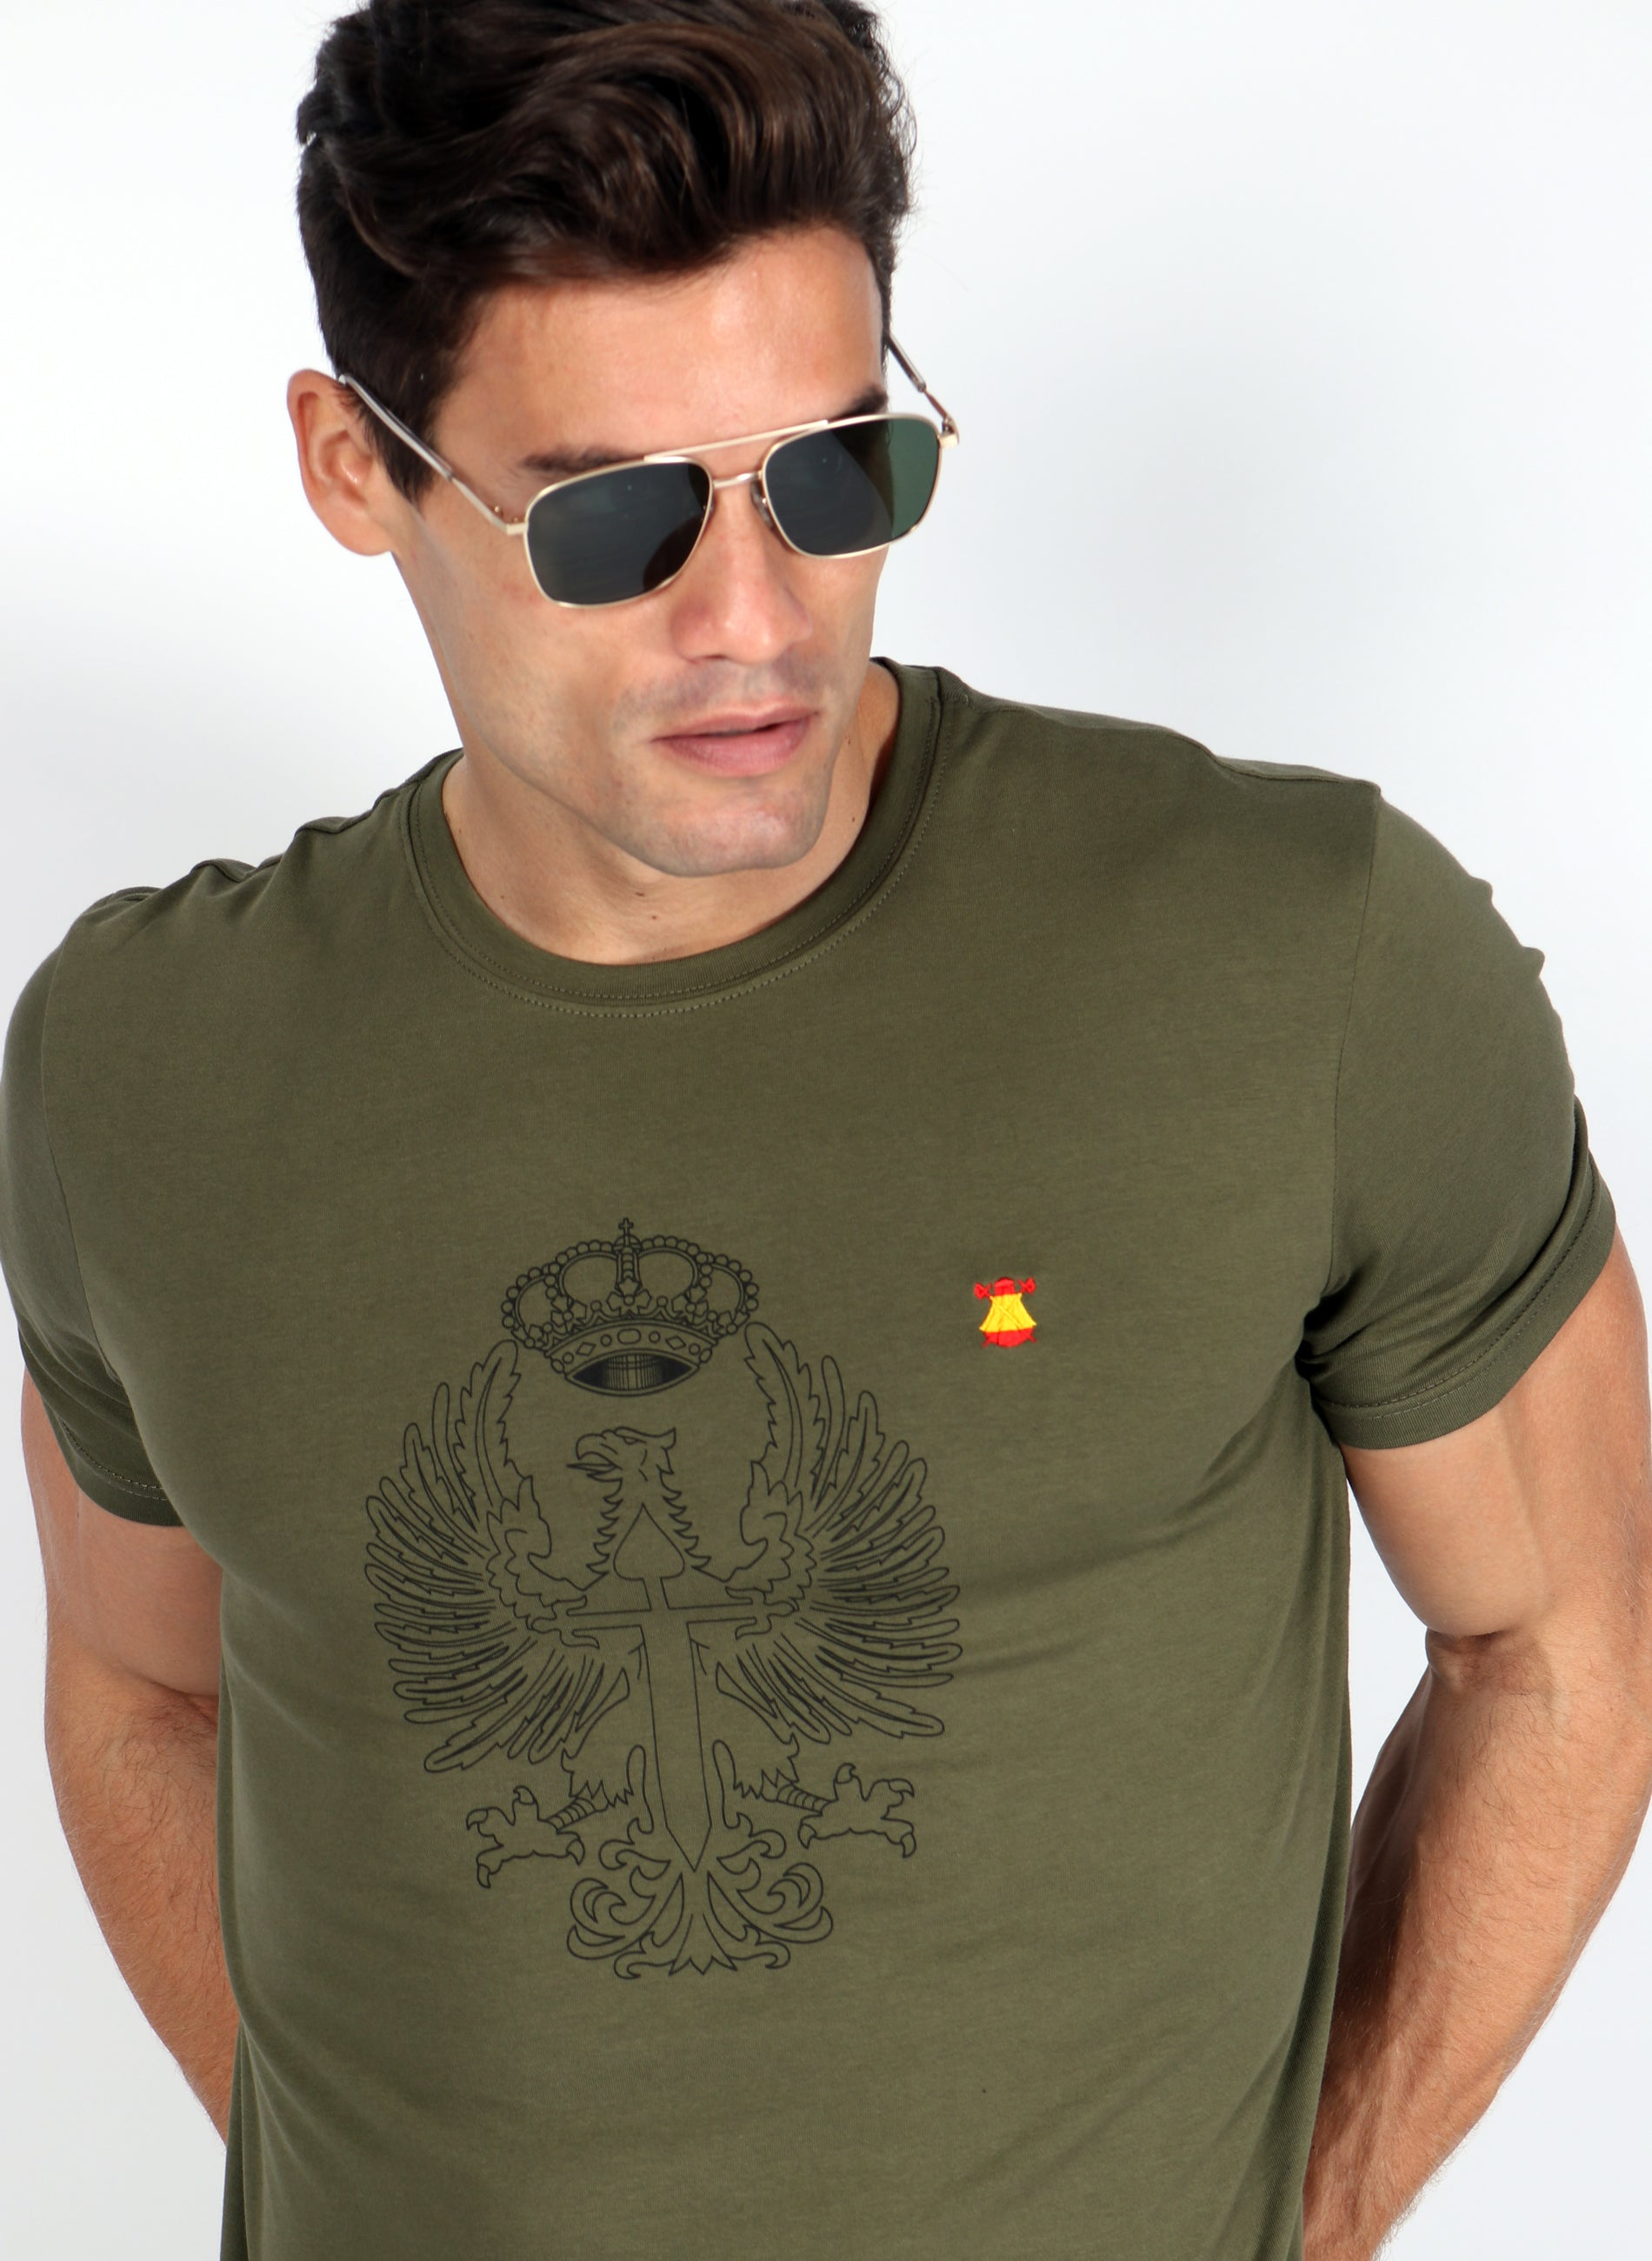 Kaki T-shirt Tribute to the Spanish Army